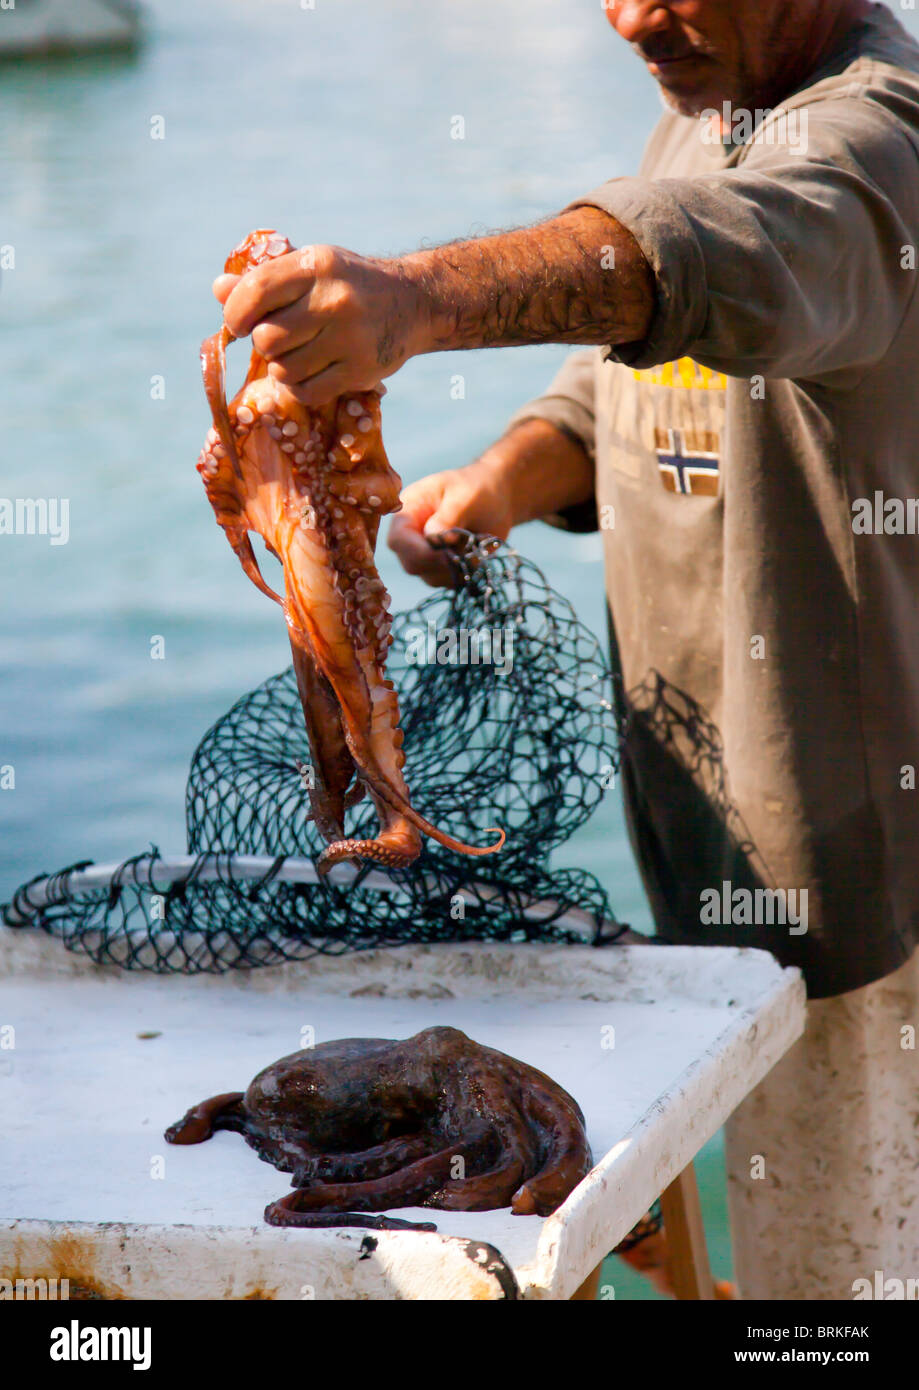 Fisherman taking an Octopus from a net in Cassis France - Stock Image